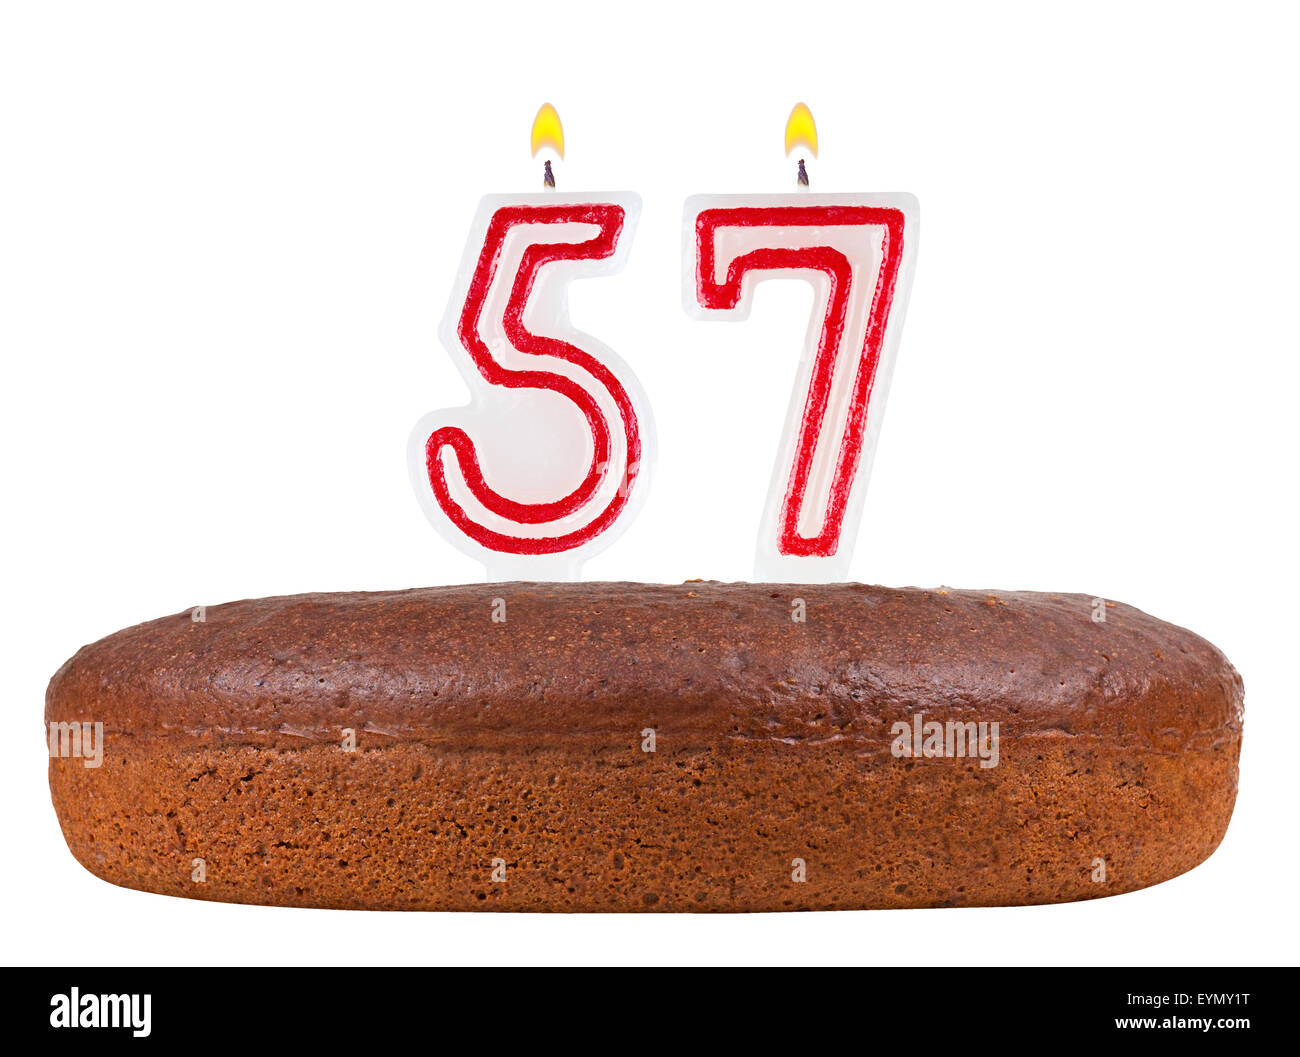 Birthday cake with candles number 57 isolated on white background birthday cake with candles number 57 isolated on white background biocorpaavc